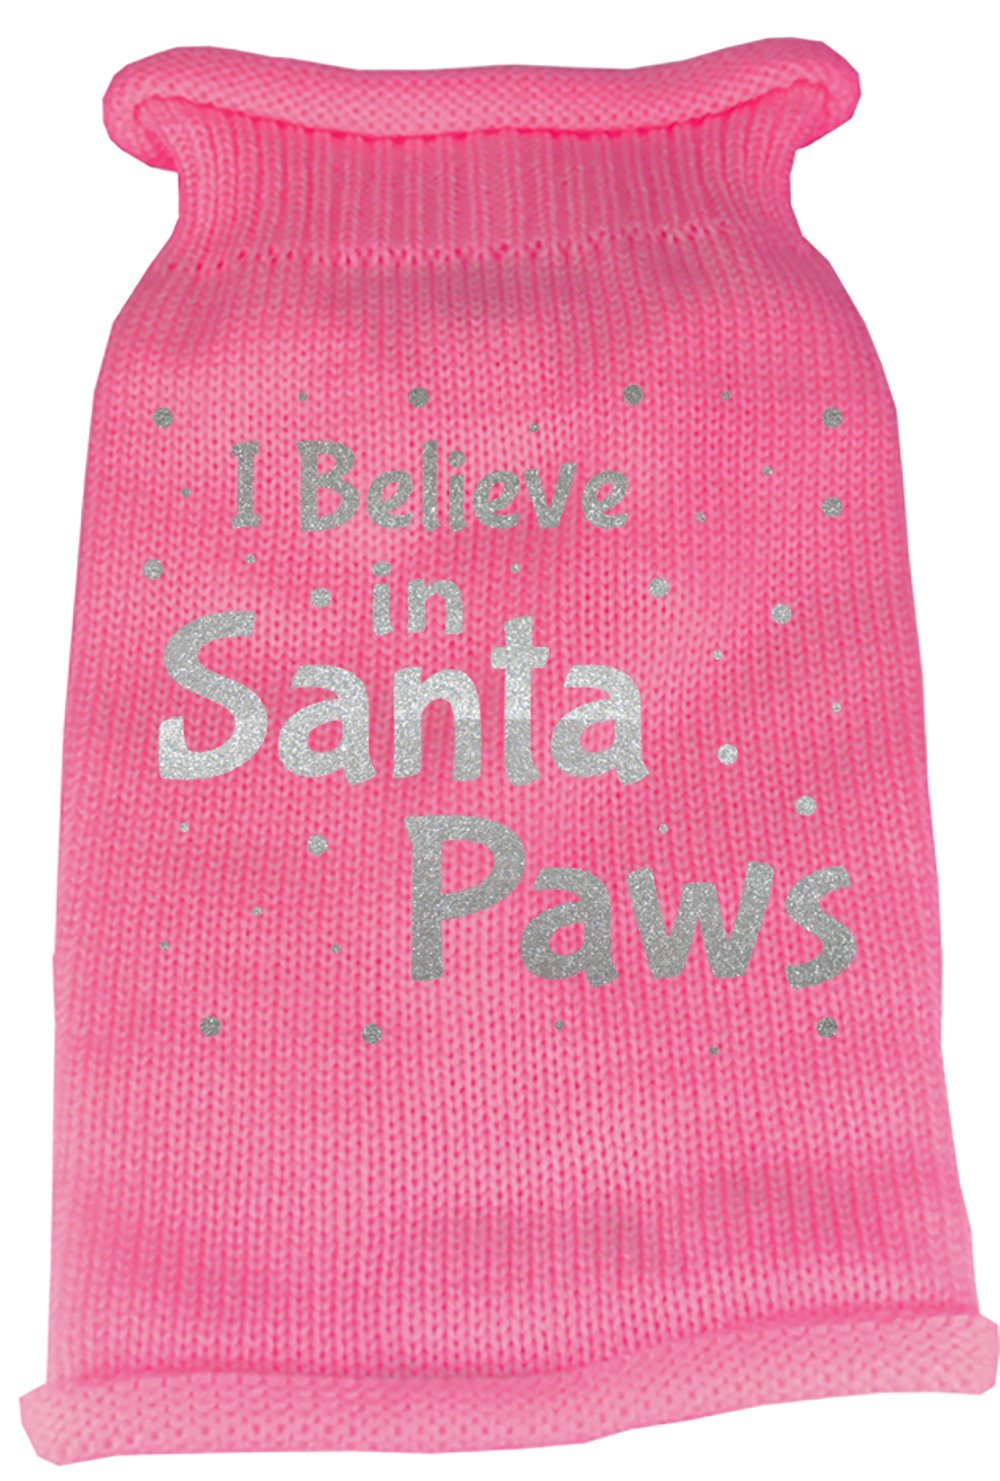 Mirage Pet Products I Believe in Santa Paws Screen Print Knit Pet Sweater, Medium, Pink